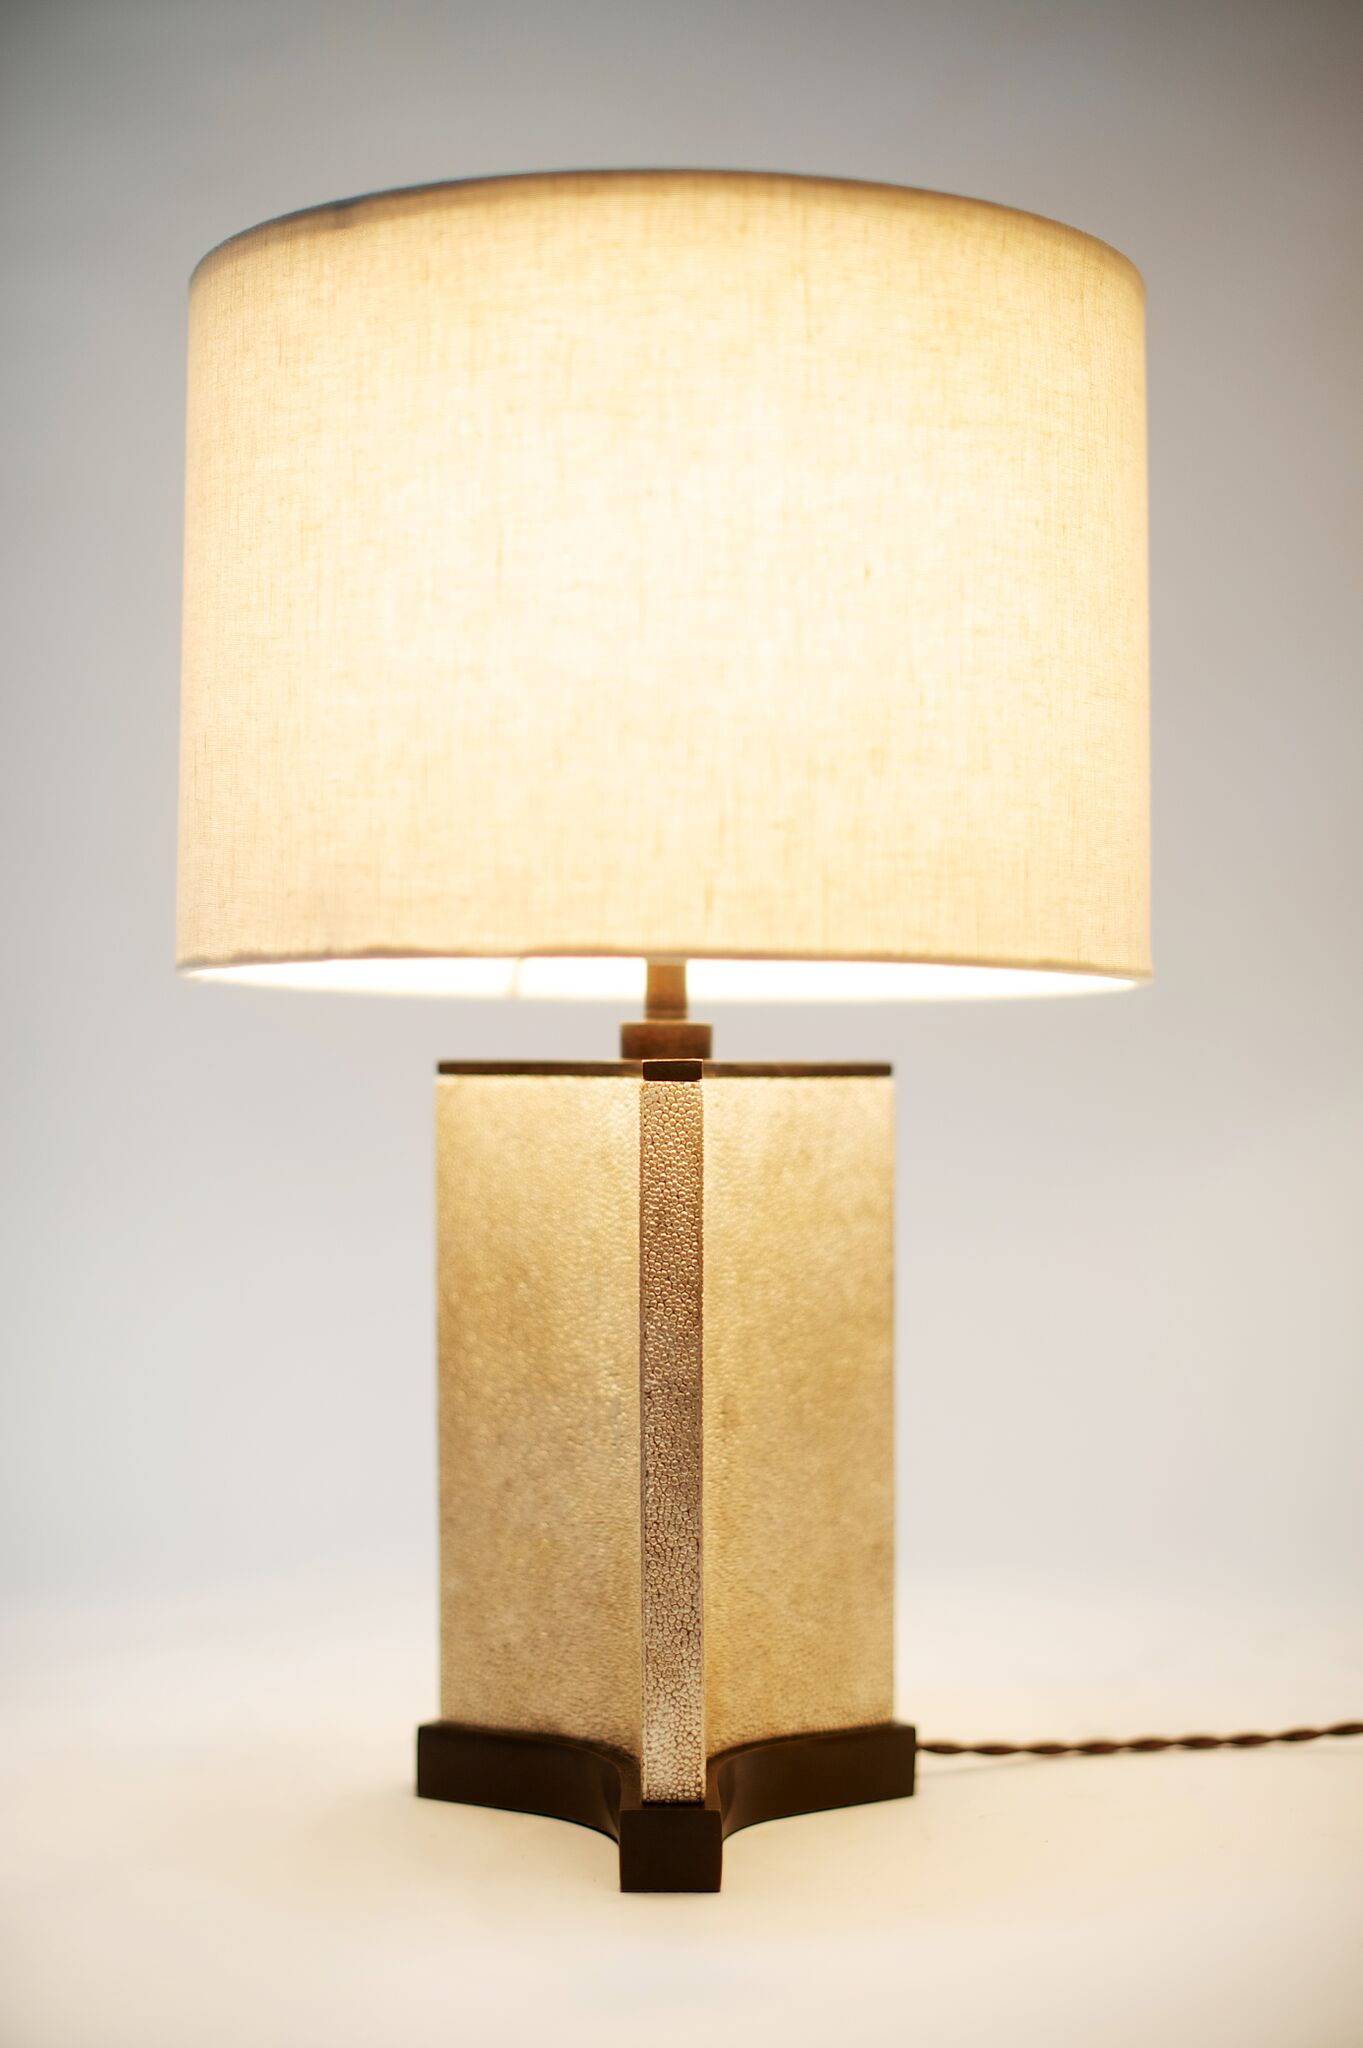 small bruno lamp 2_preview.jpeg